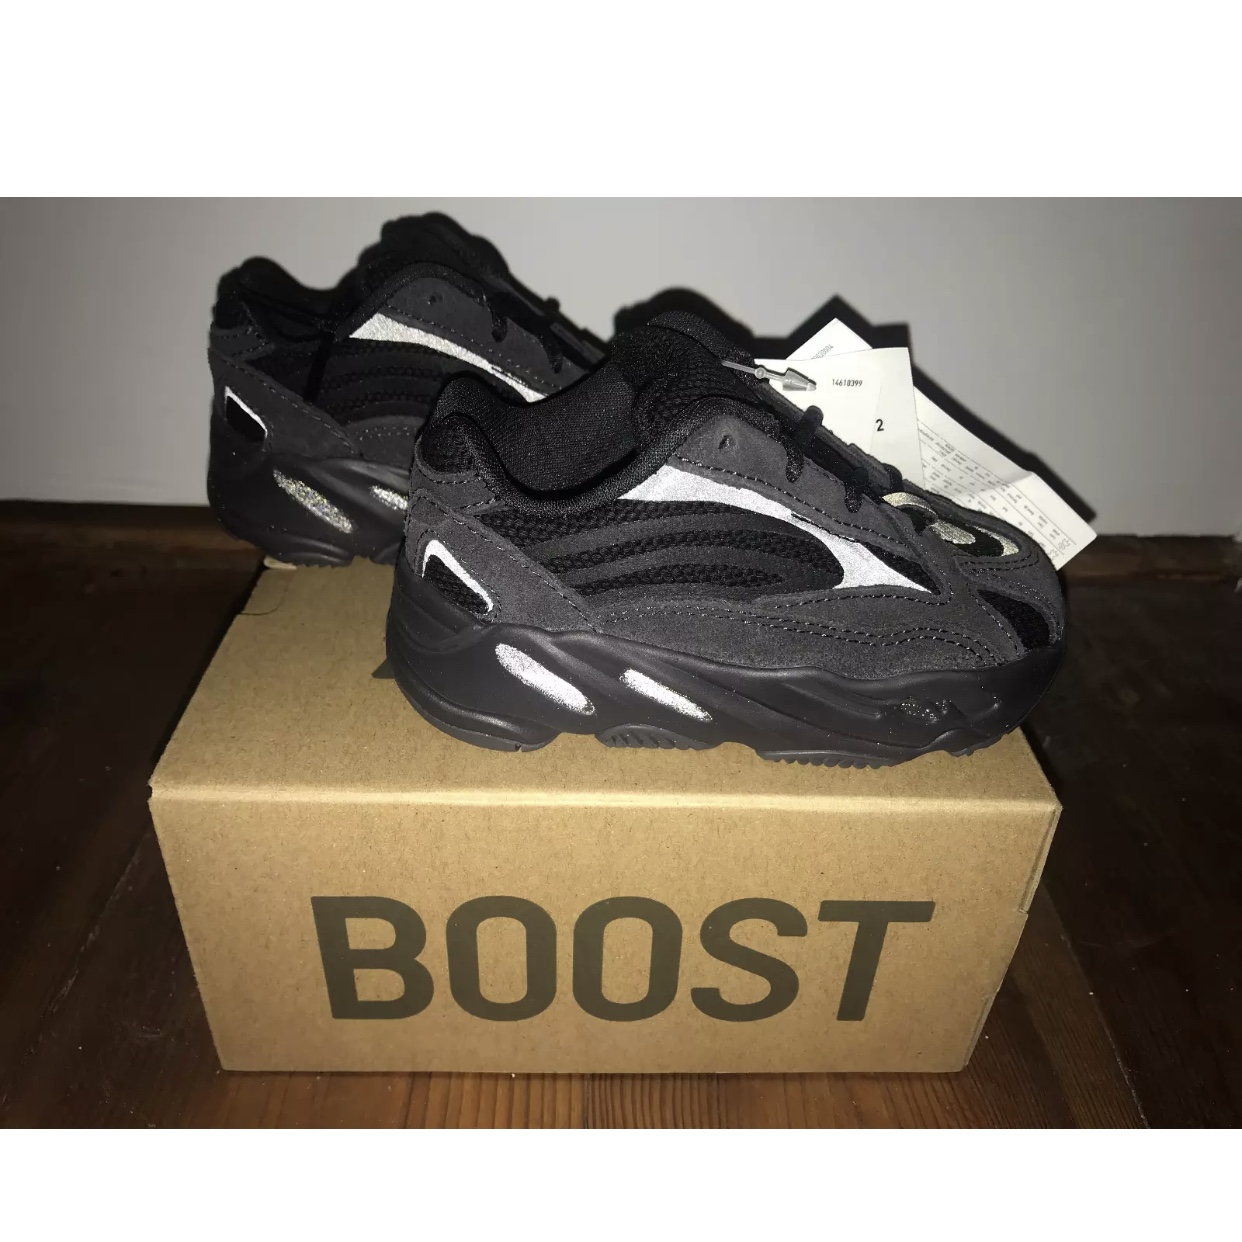 purchase cheap dbd25 80d5f BNWT Adidas Yeezy Boost 700 V2 Vanta Kids Junior in ...